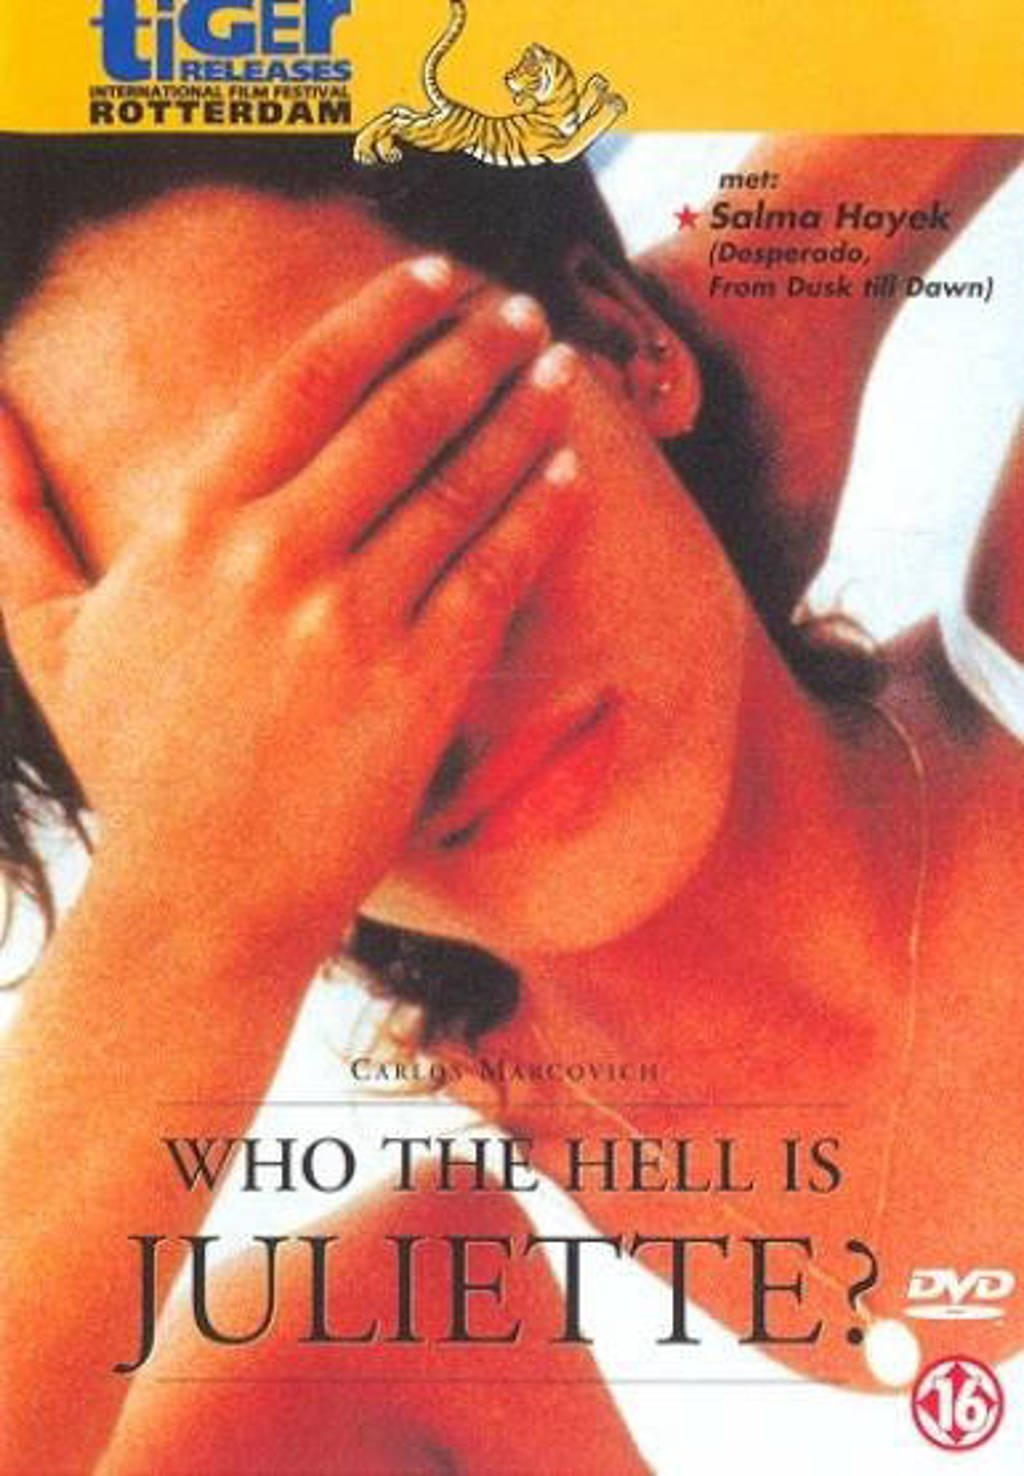 Who the hell is Juliette? (DVD)